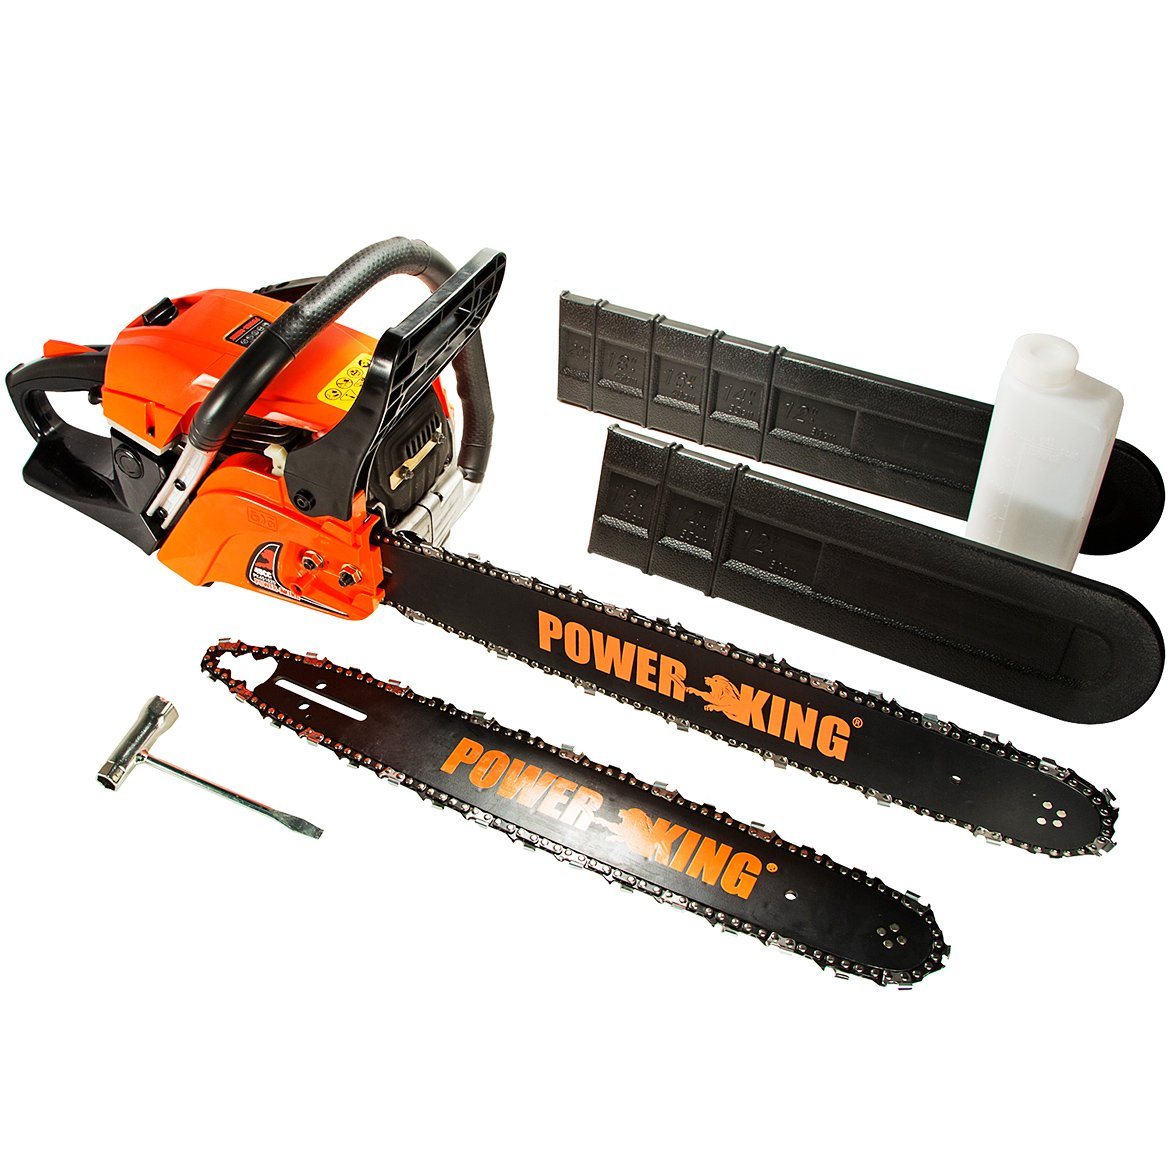 PowerKing Chainsaw & Bar Combo Pack QV TOOLS